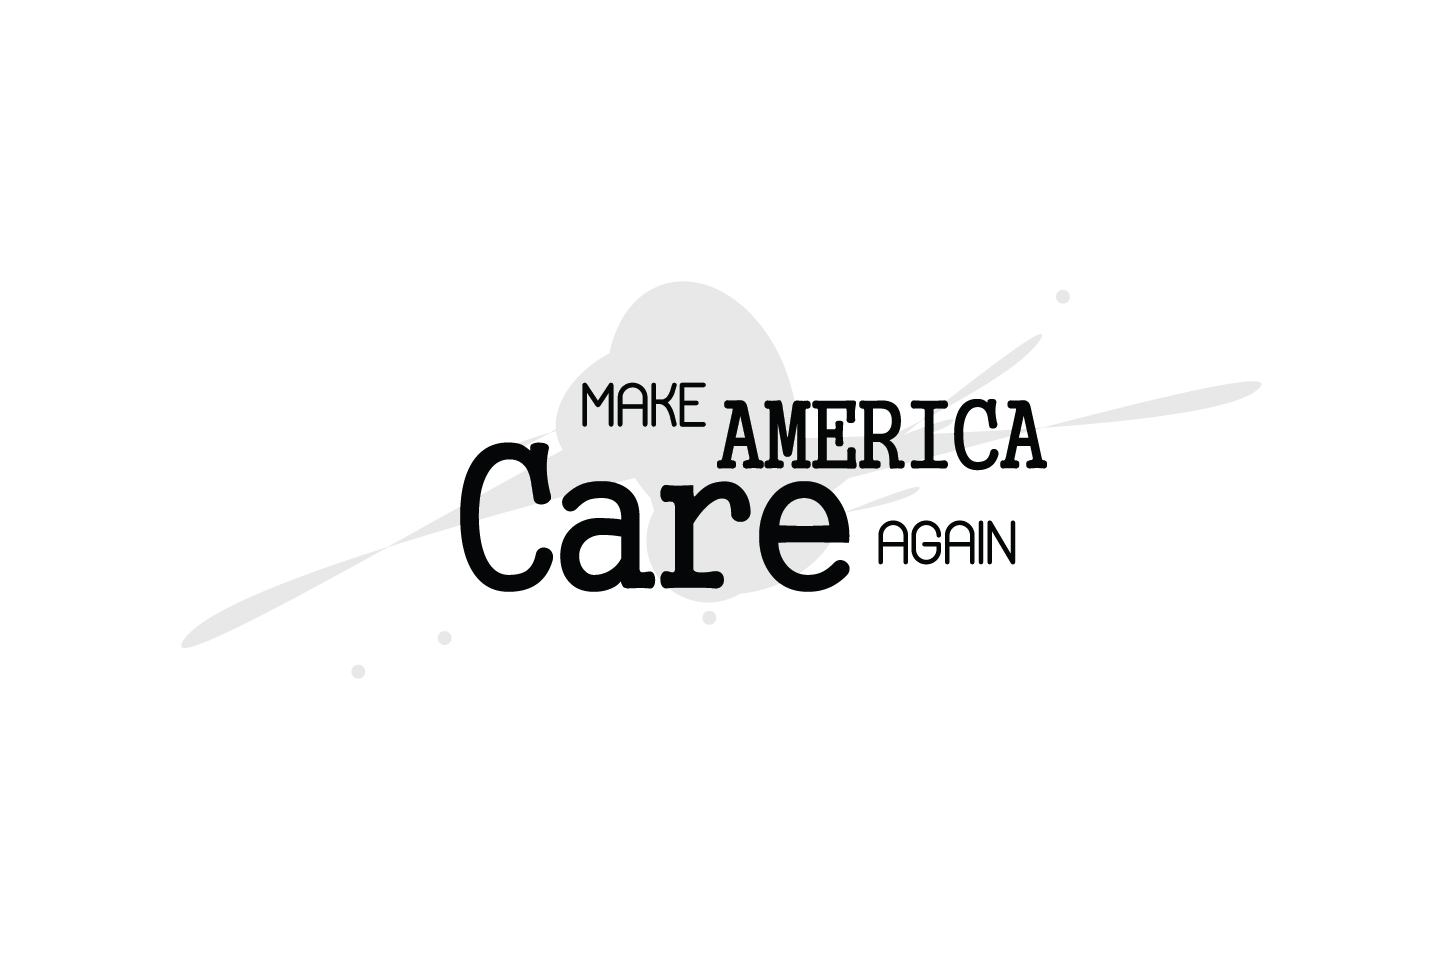 Download Free Make America Care Again Quote Svg Cut Graphic By Yuhana Purwanti for Cricut Explore, Silhouette and other cutting machines.